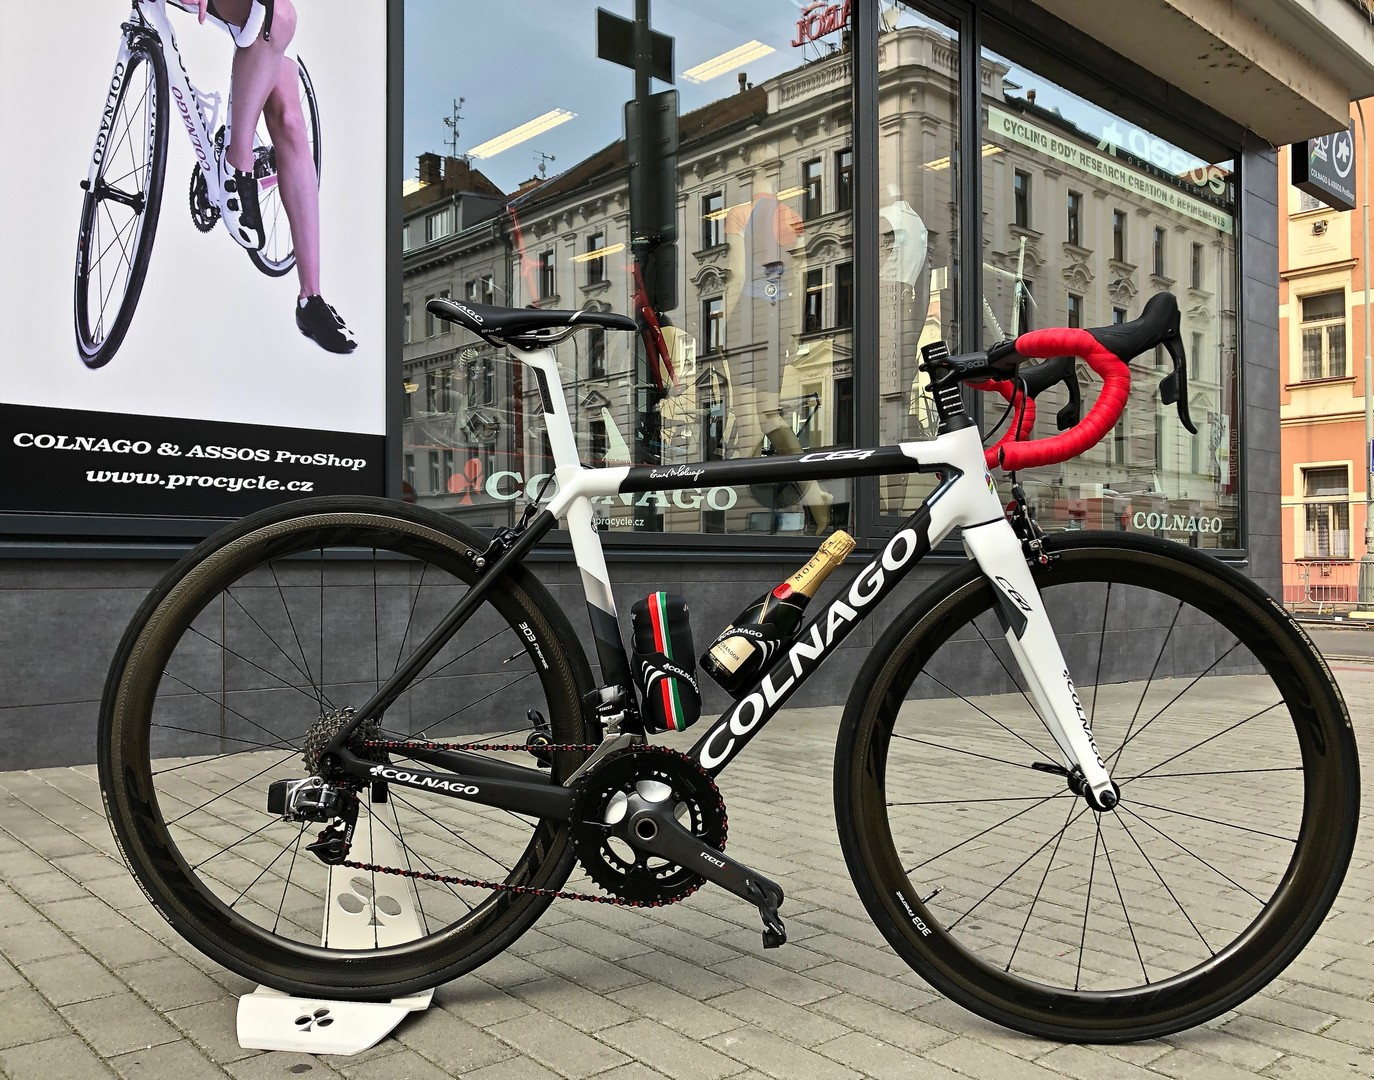 COLNAGO & ASSOS PROSHOP IN PRAGUE